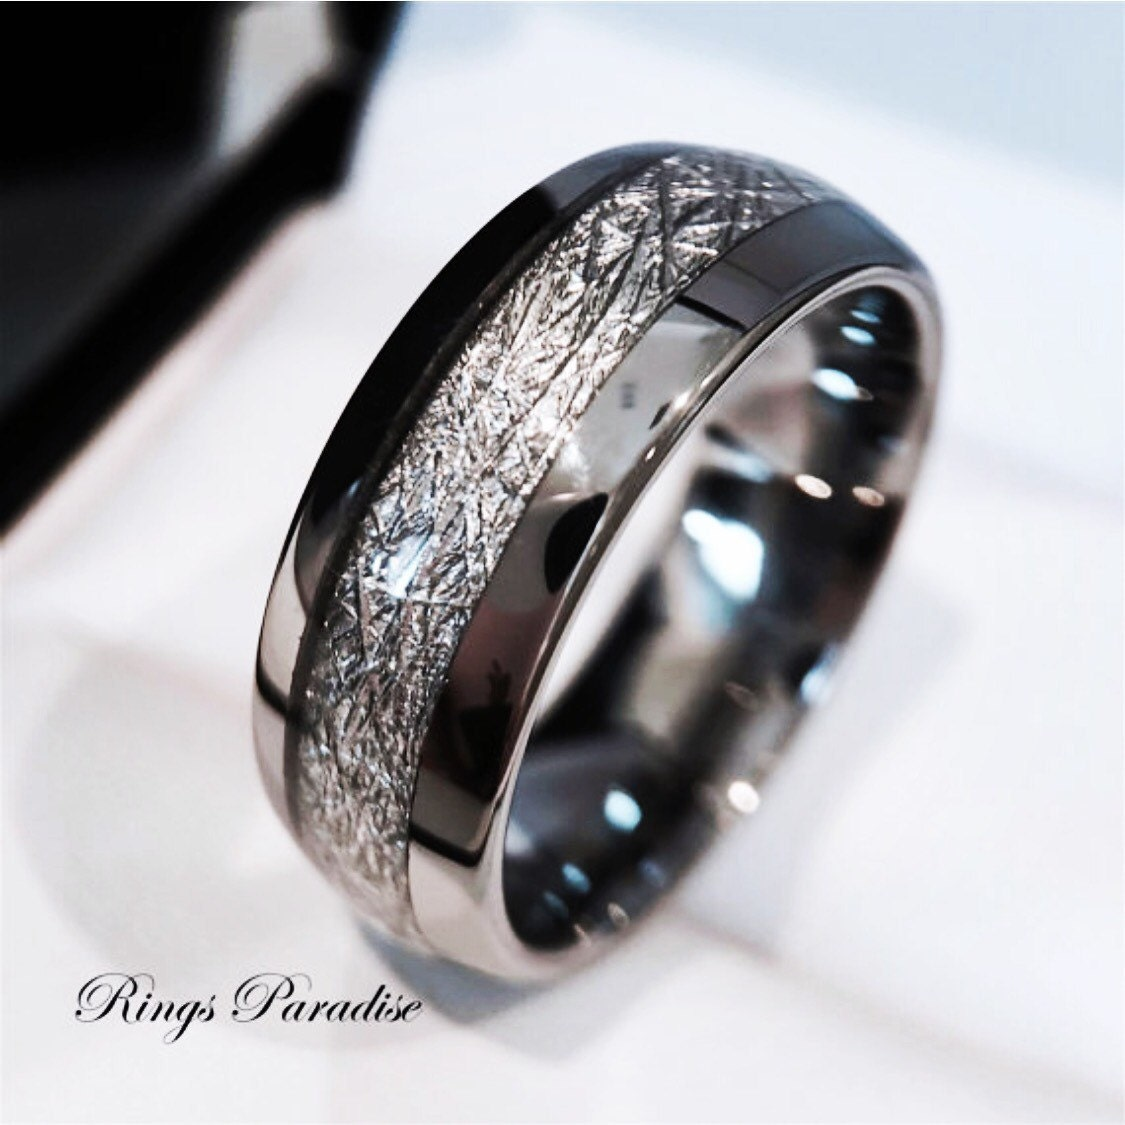 Tungsten Wedding Rings.Tungsten Wedding Band His And Her Promise Ring Imitated Meteorite Inlay Ring Tungsten Rings Men S Tungsten Rings Women S Wedding Bands